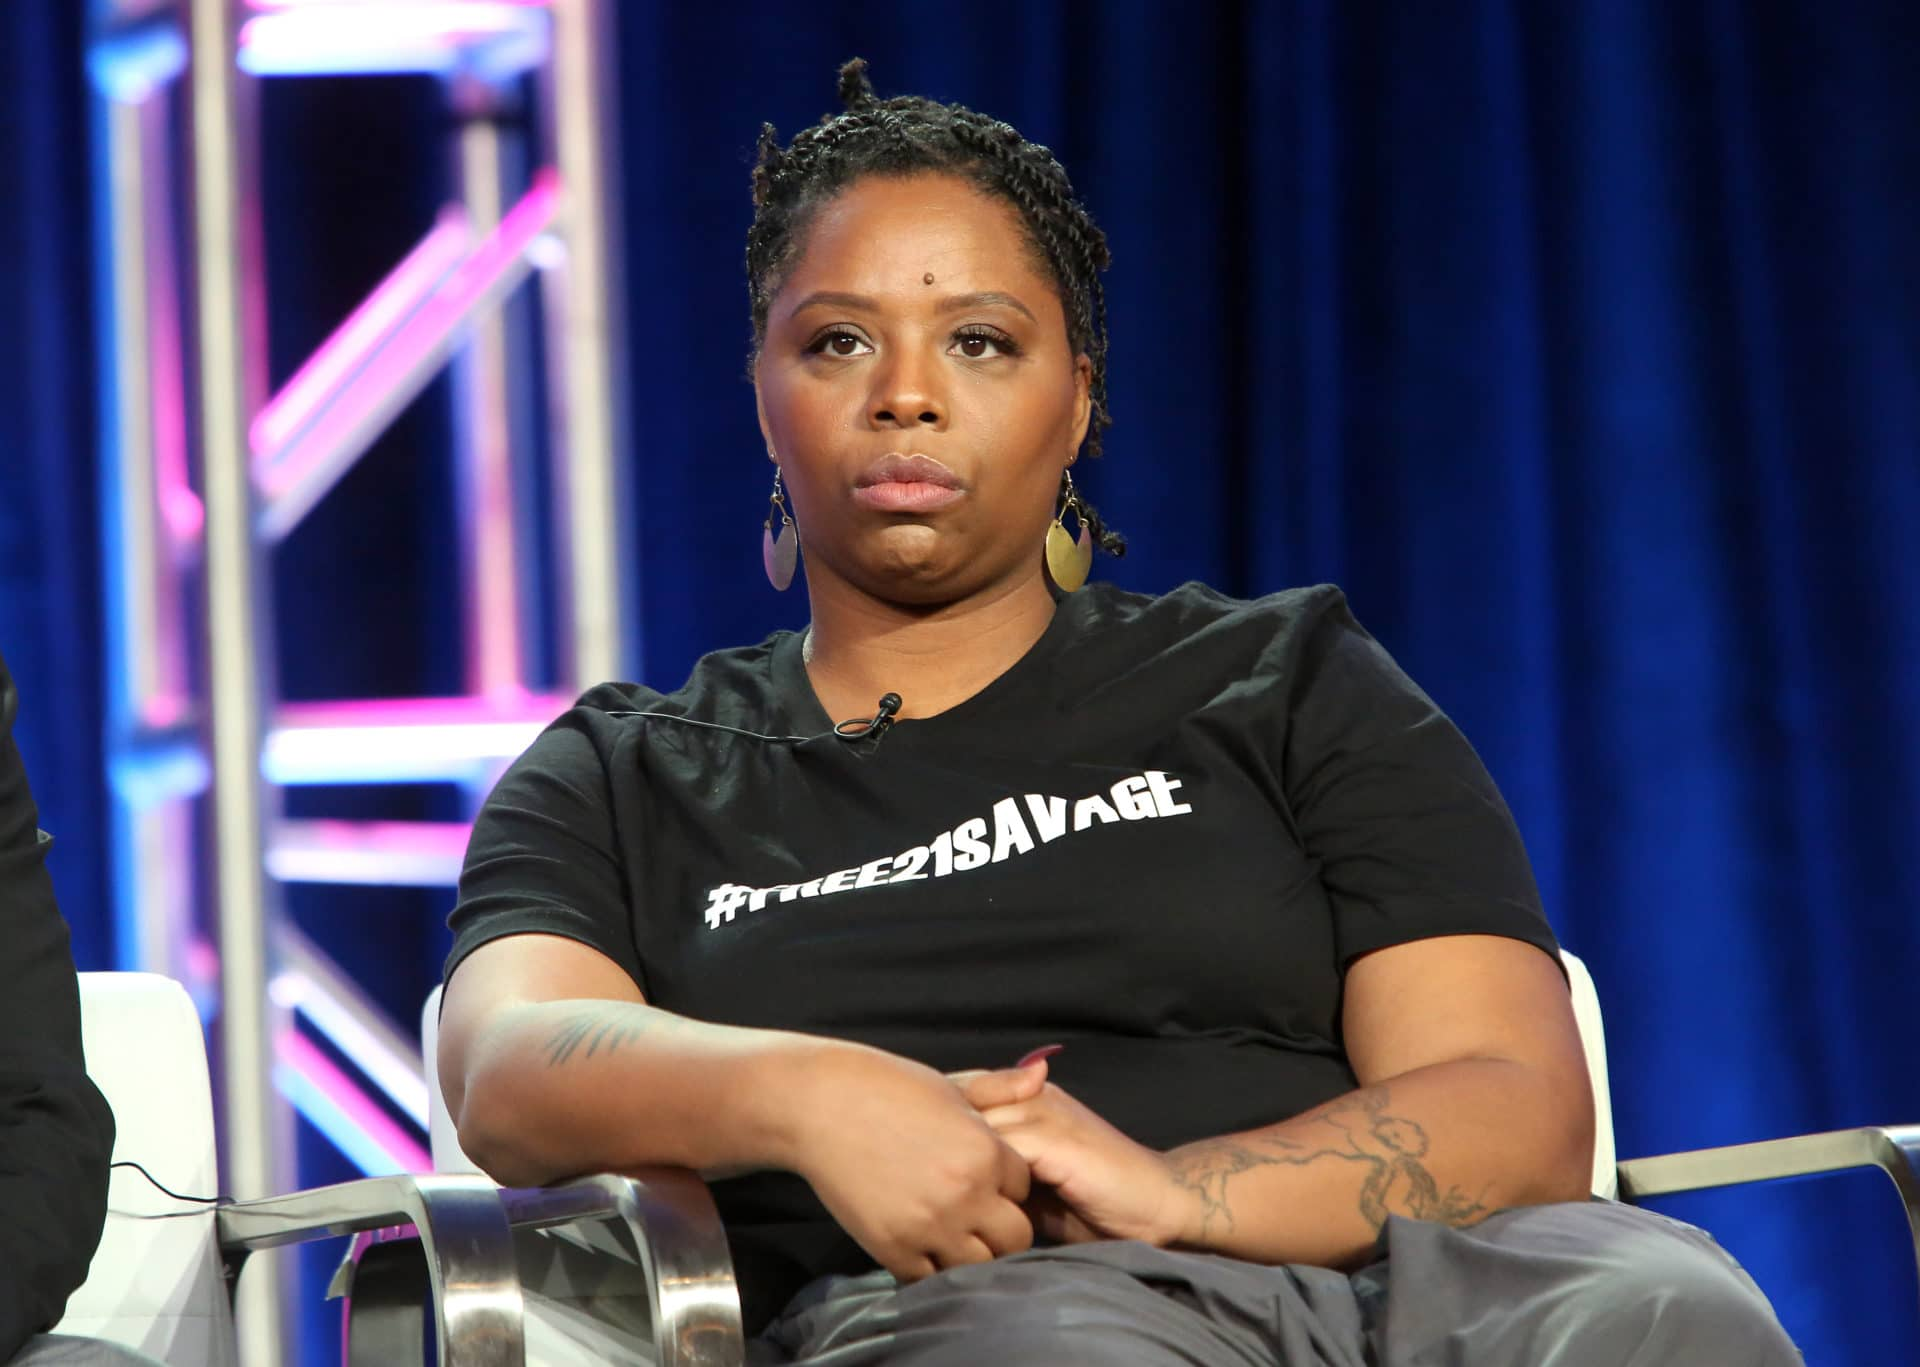 Black Lives Matter Co-Founder Patrisse Cullors Speaks On African Americans Supporting Immigration Rights